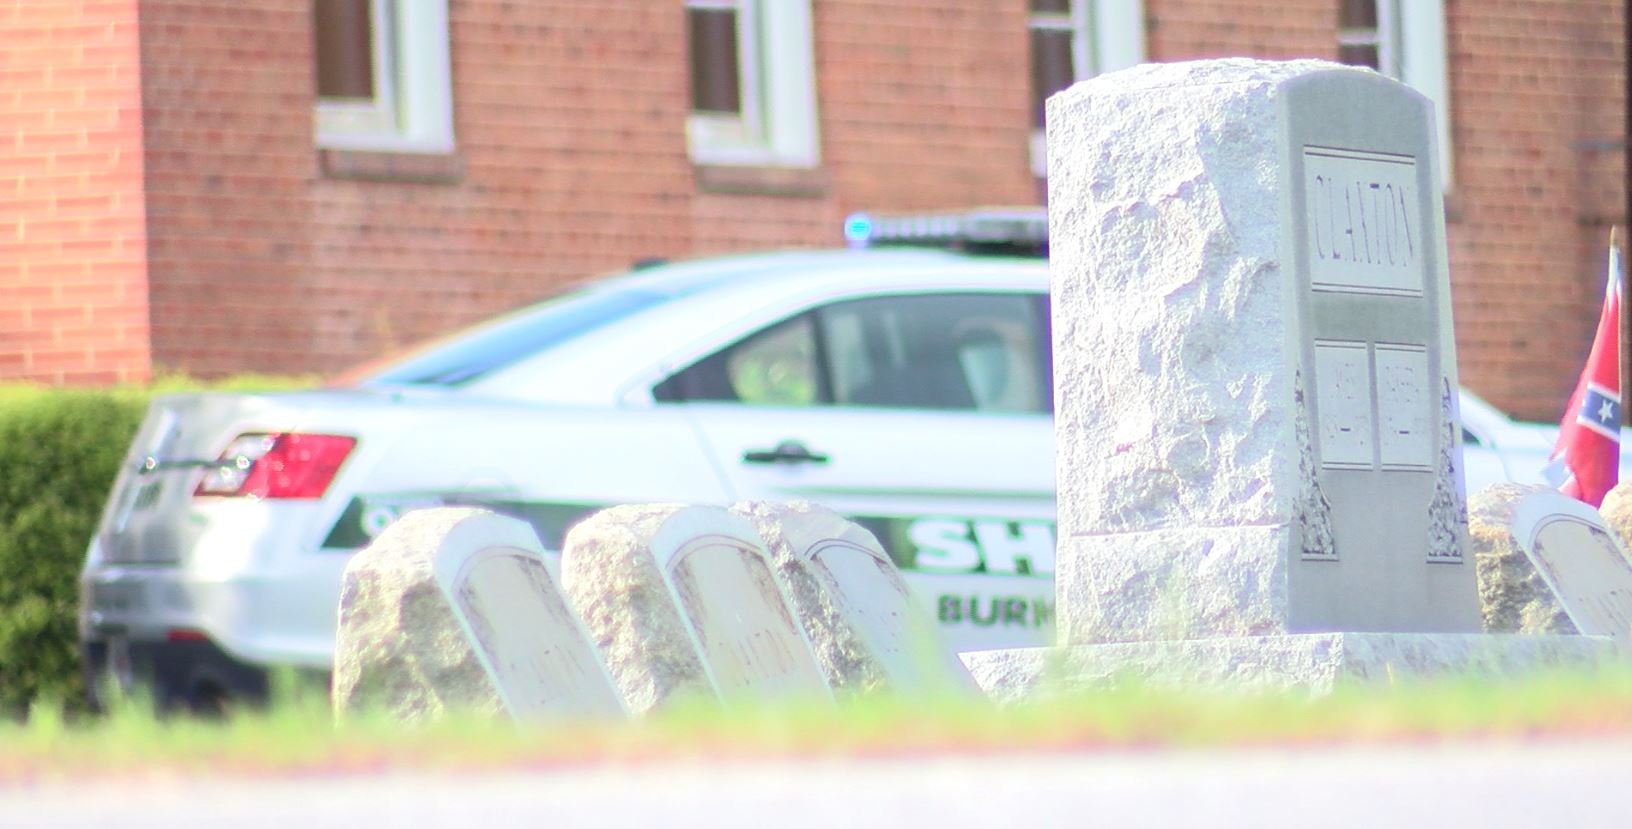 The Columbia County Force Investigation Team is making sure the shooting was justified; WFXG.